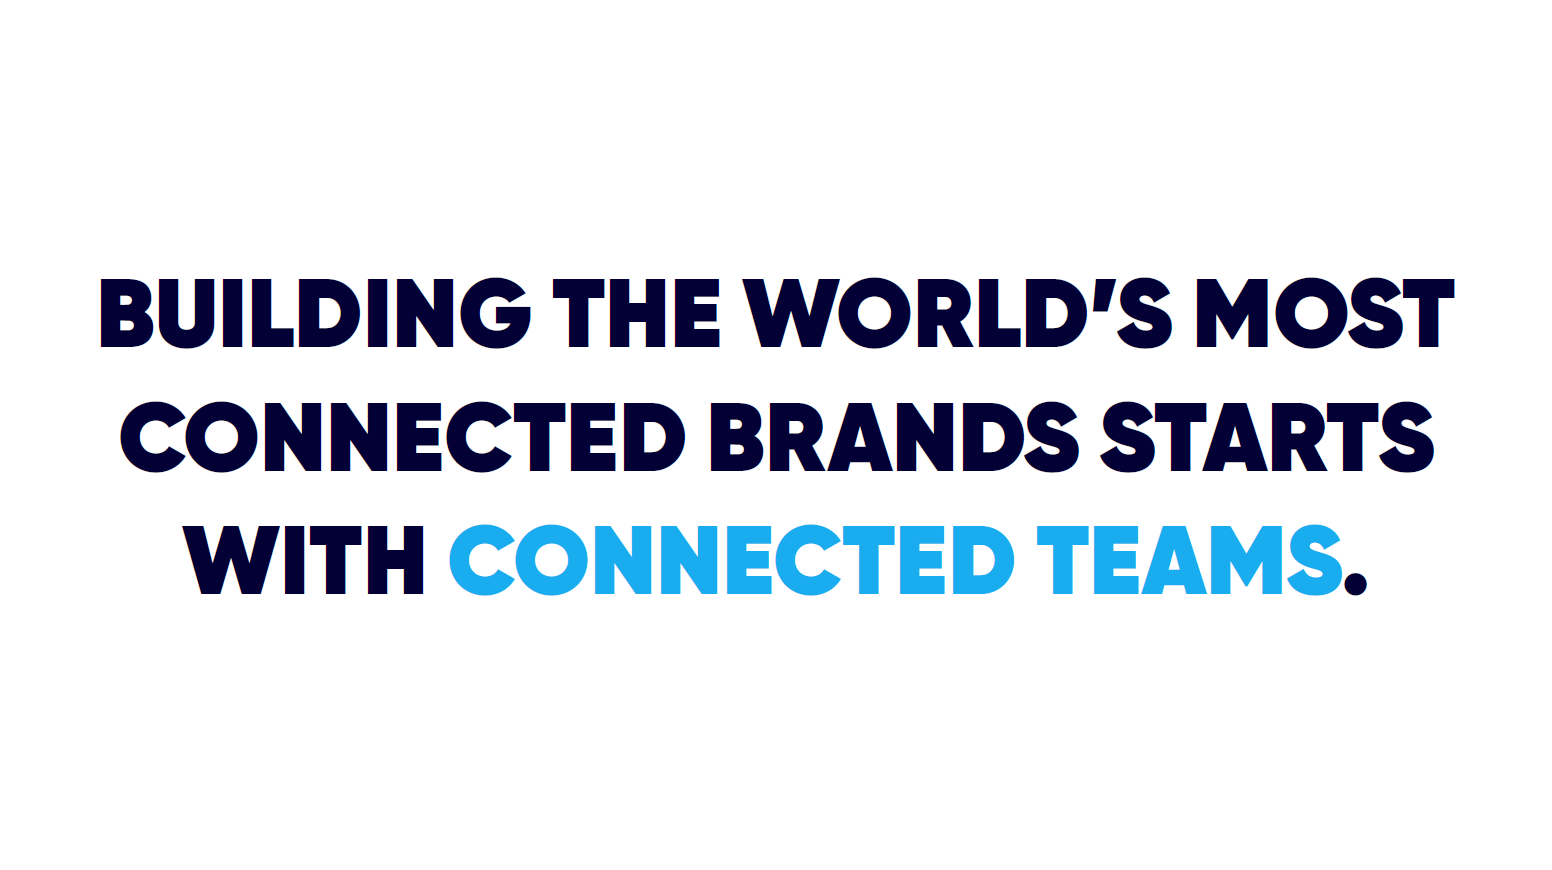 Building the world's most connected brands starts with connected teams